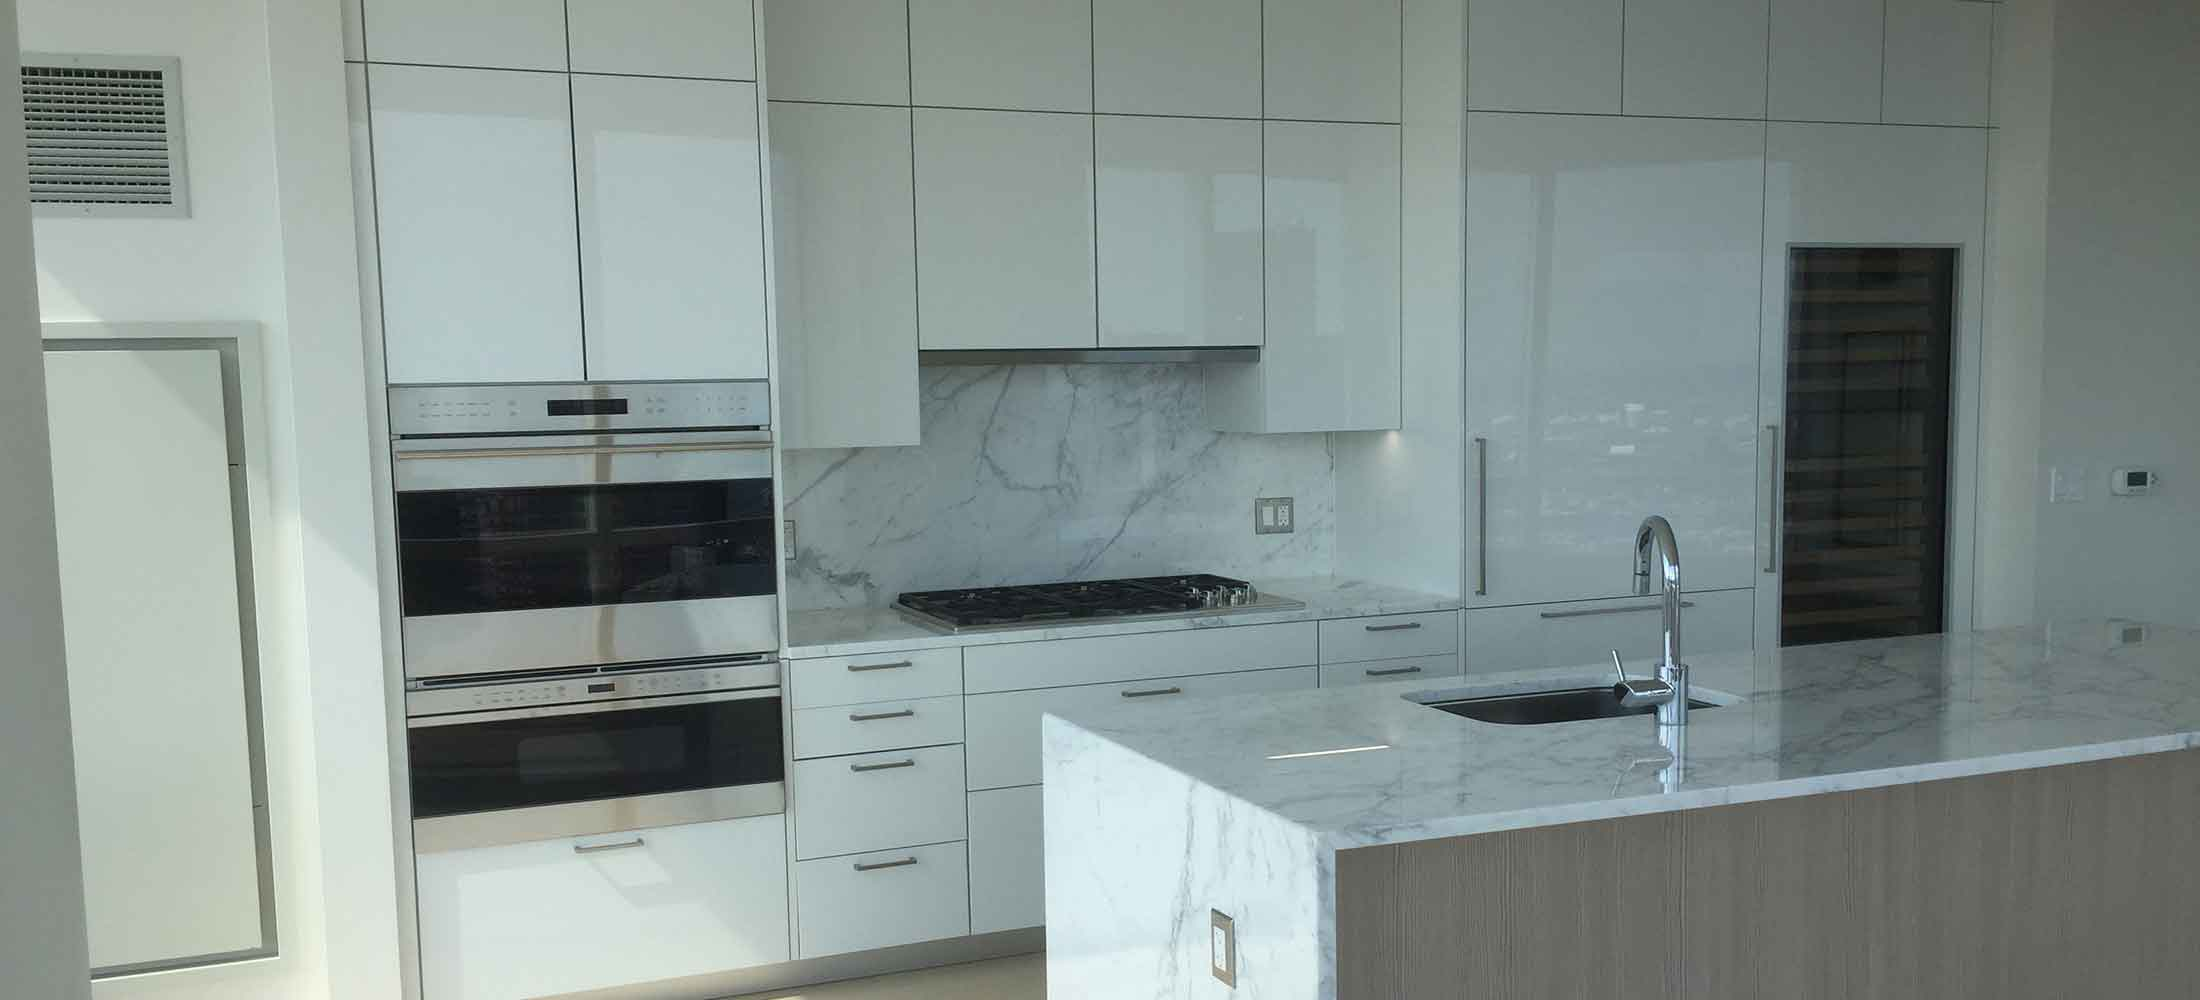 kitchen cabinet refinishing refacing painting painters boston ma background